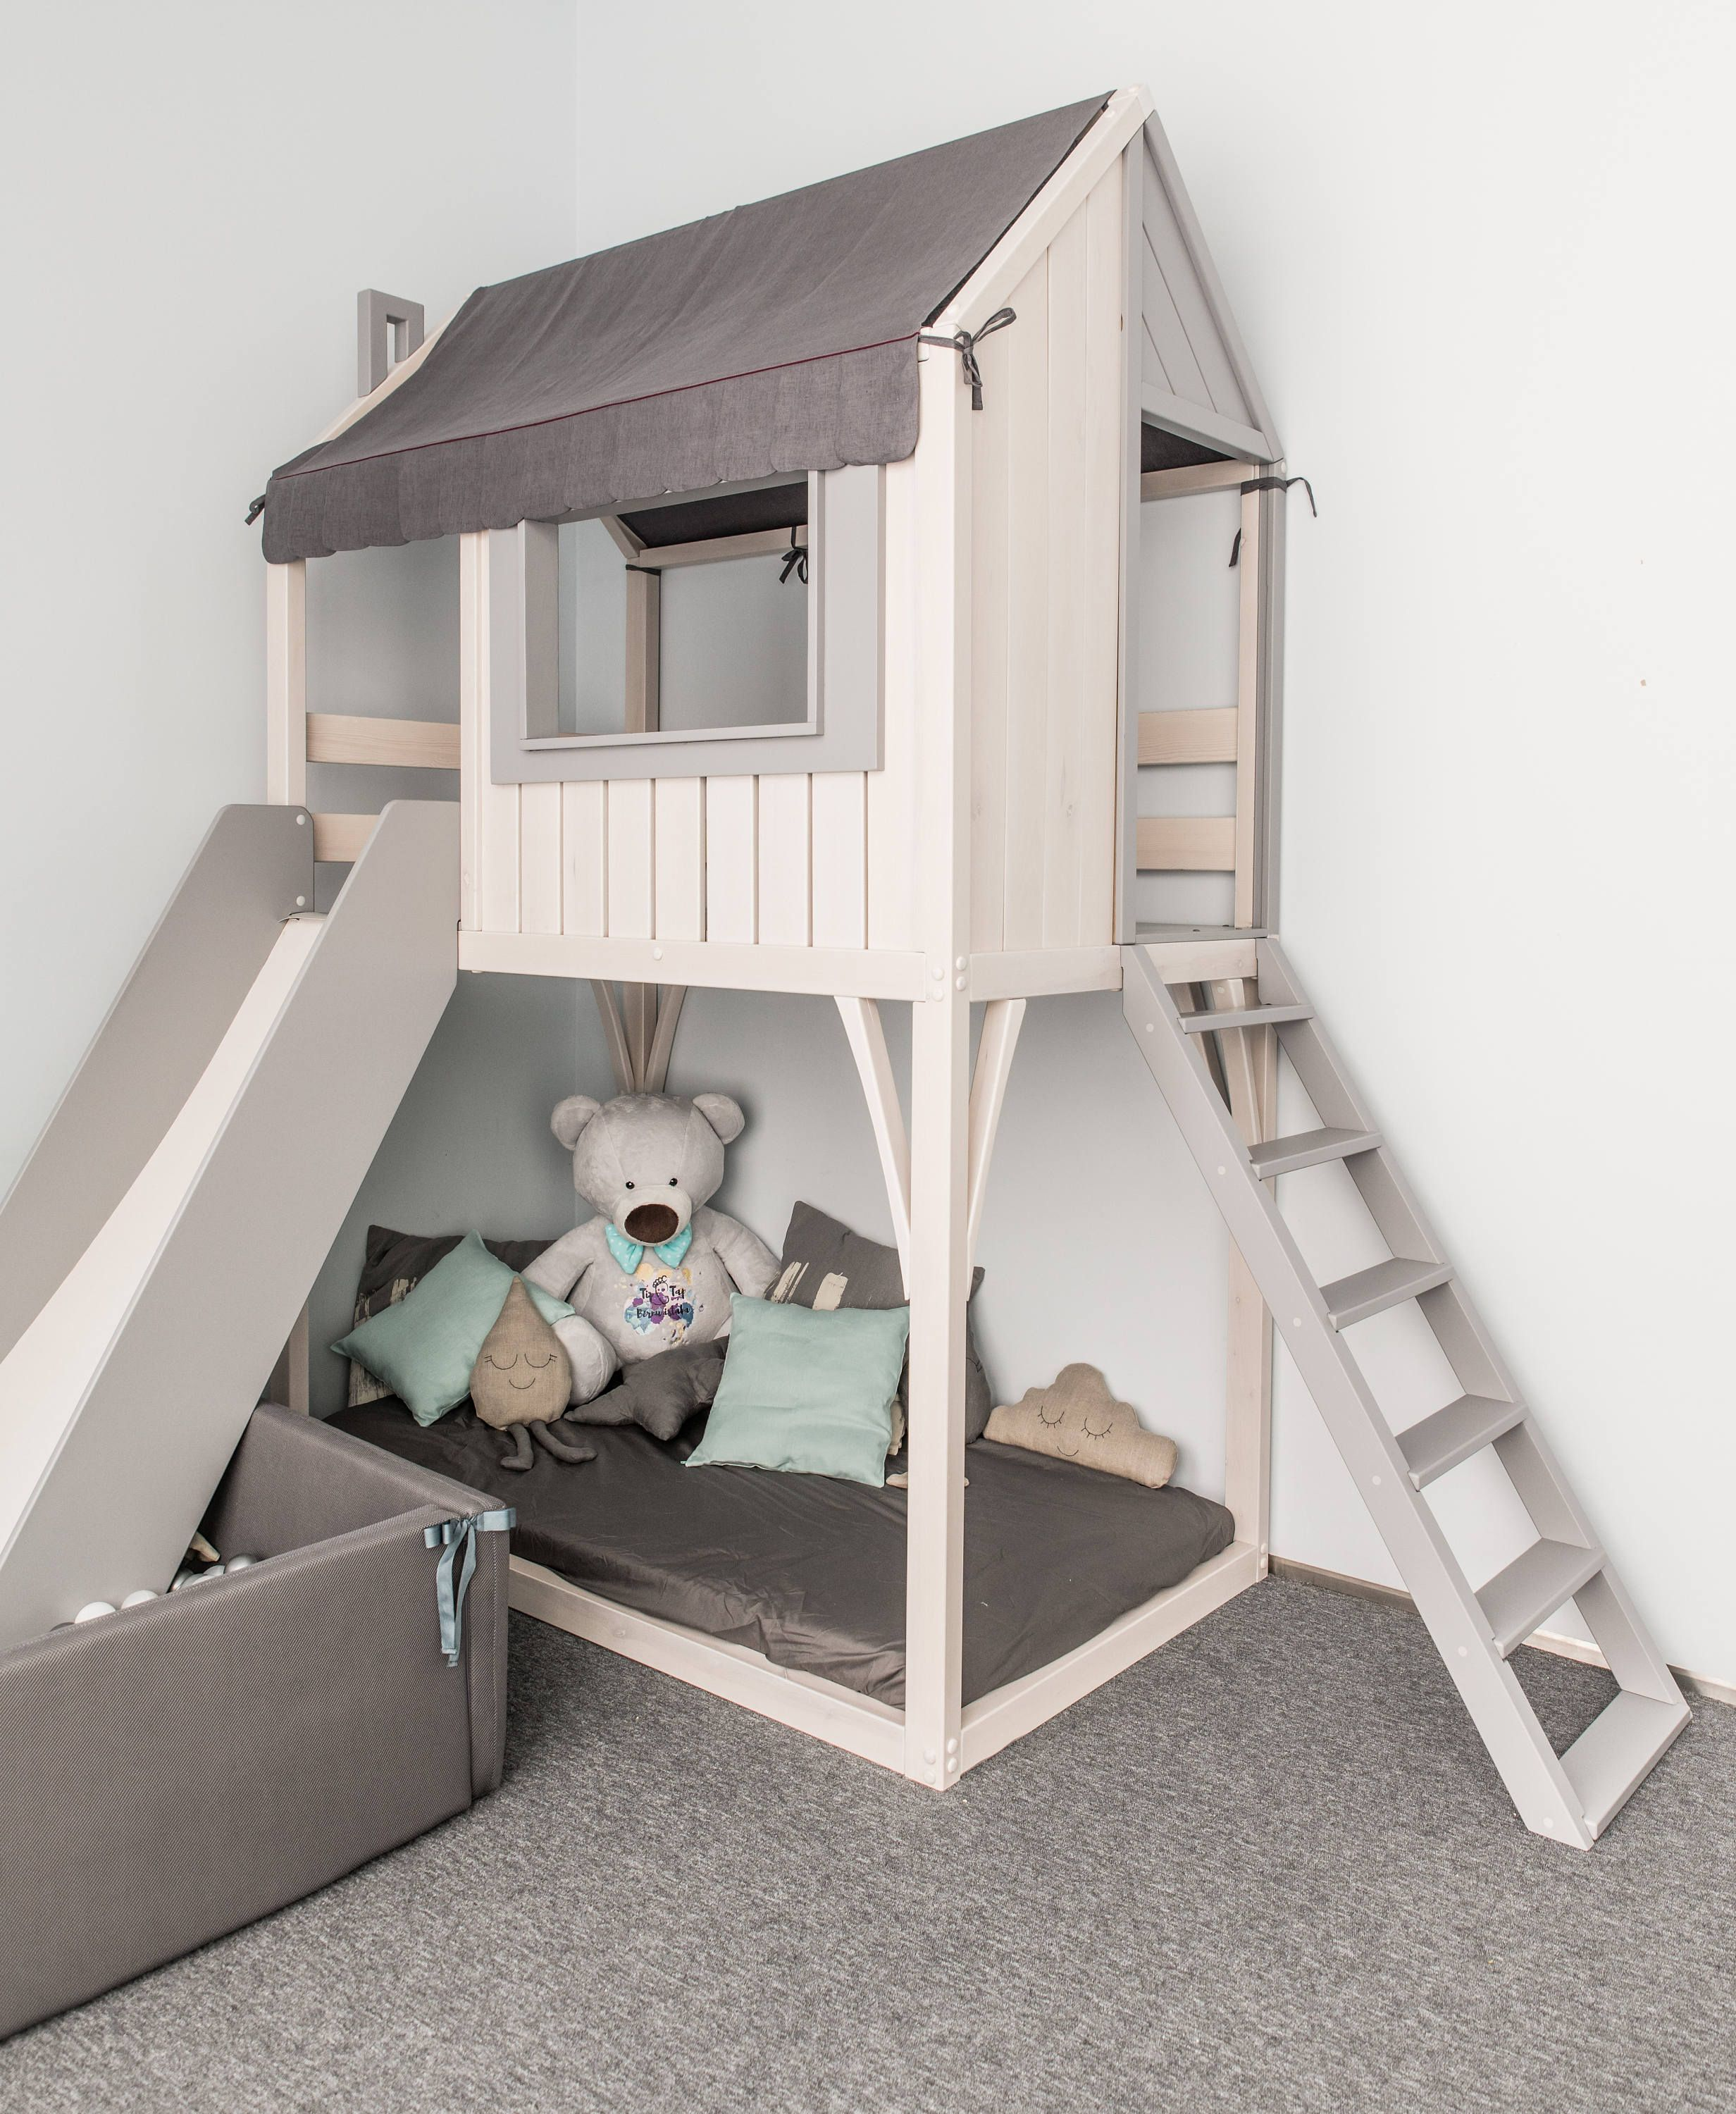 Loft Bed Playhouse Children Bed Bunk Bed For Kids Kids Etsy In 2020 Kids Bunk Beds Kid Beds Loft Bed